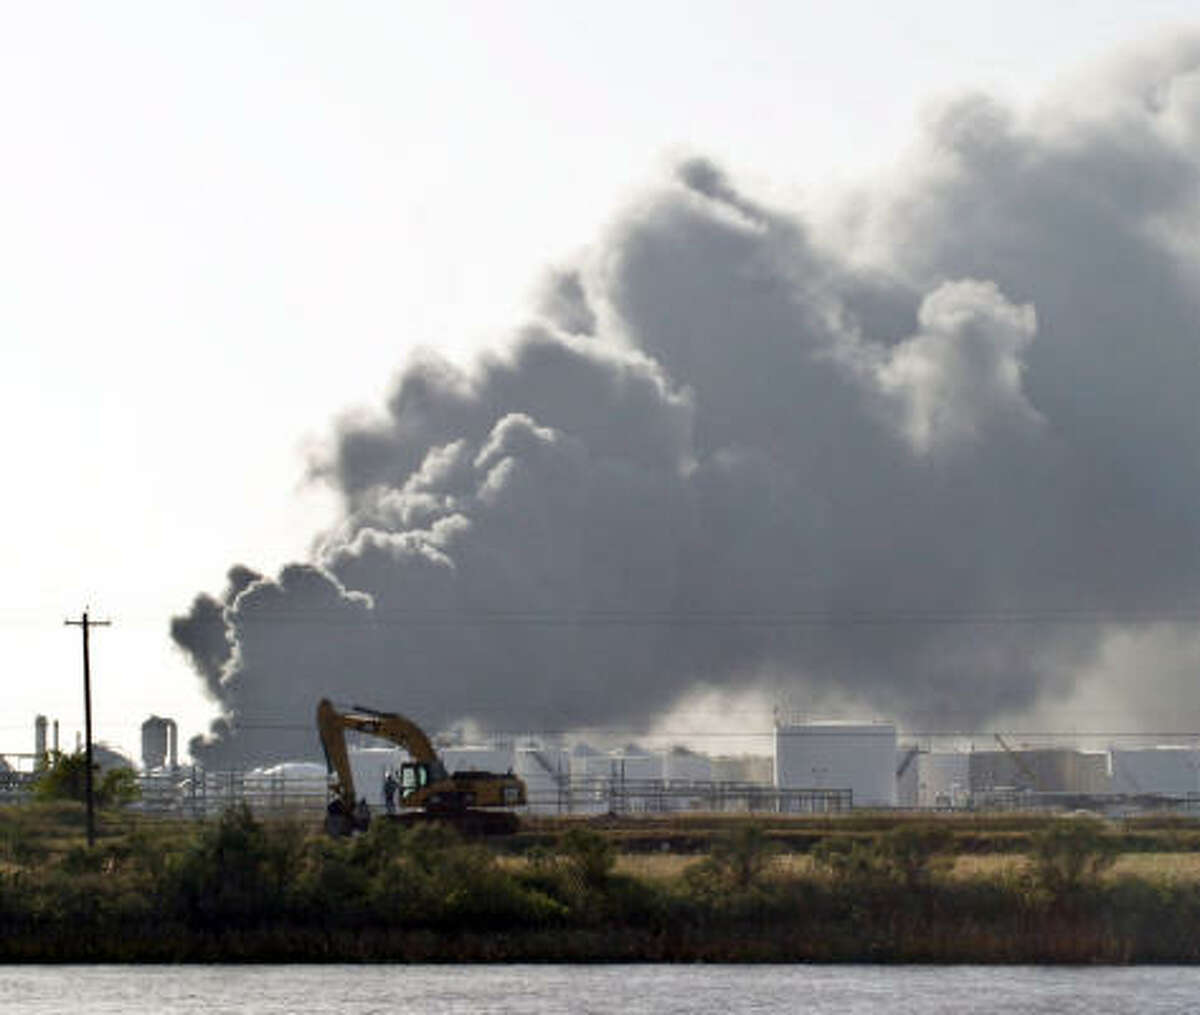 Wednesday's blast at the American Acryl plant in Seabrook sent a plume of smoke across the area.